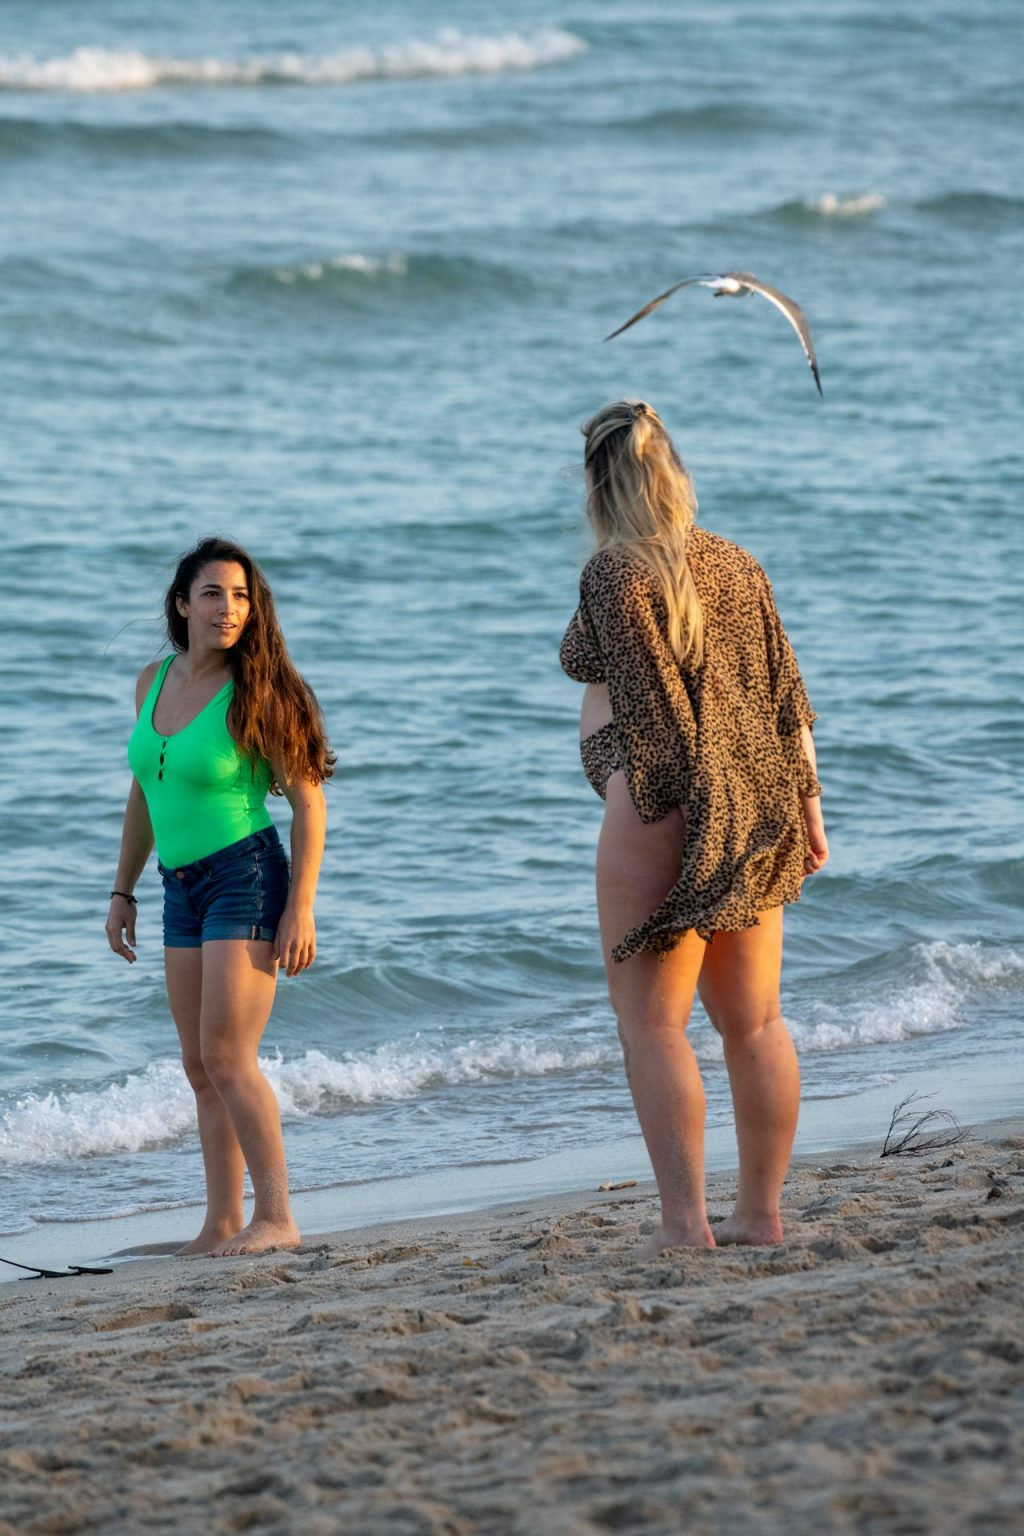 Iskra Lawrence Sexy The Fappening Blog 9 1024x1536 - Heavily Pregnant Model Iskra Lawrence Takes A Sunset Dip In Miami Beach (44 Photos)